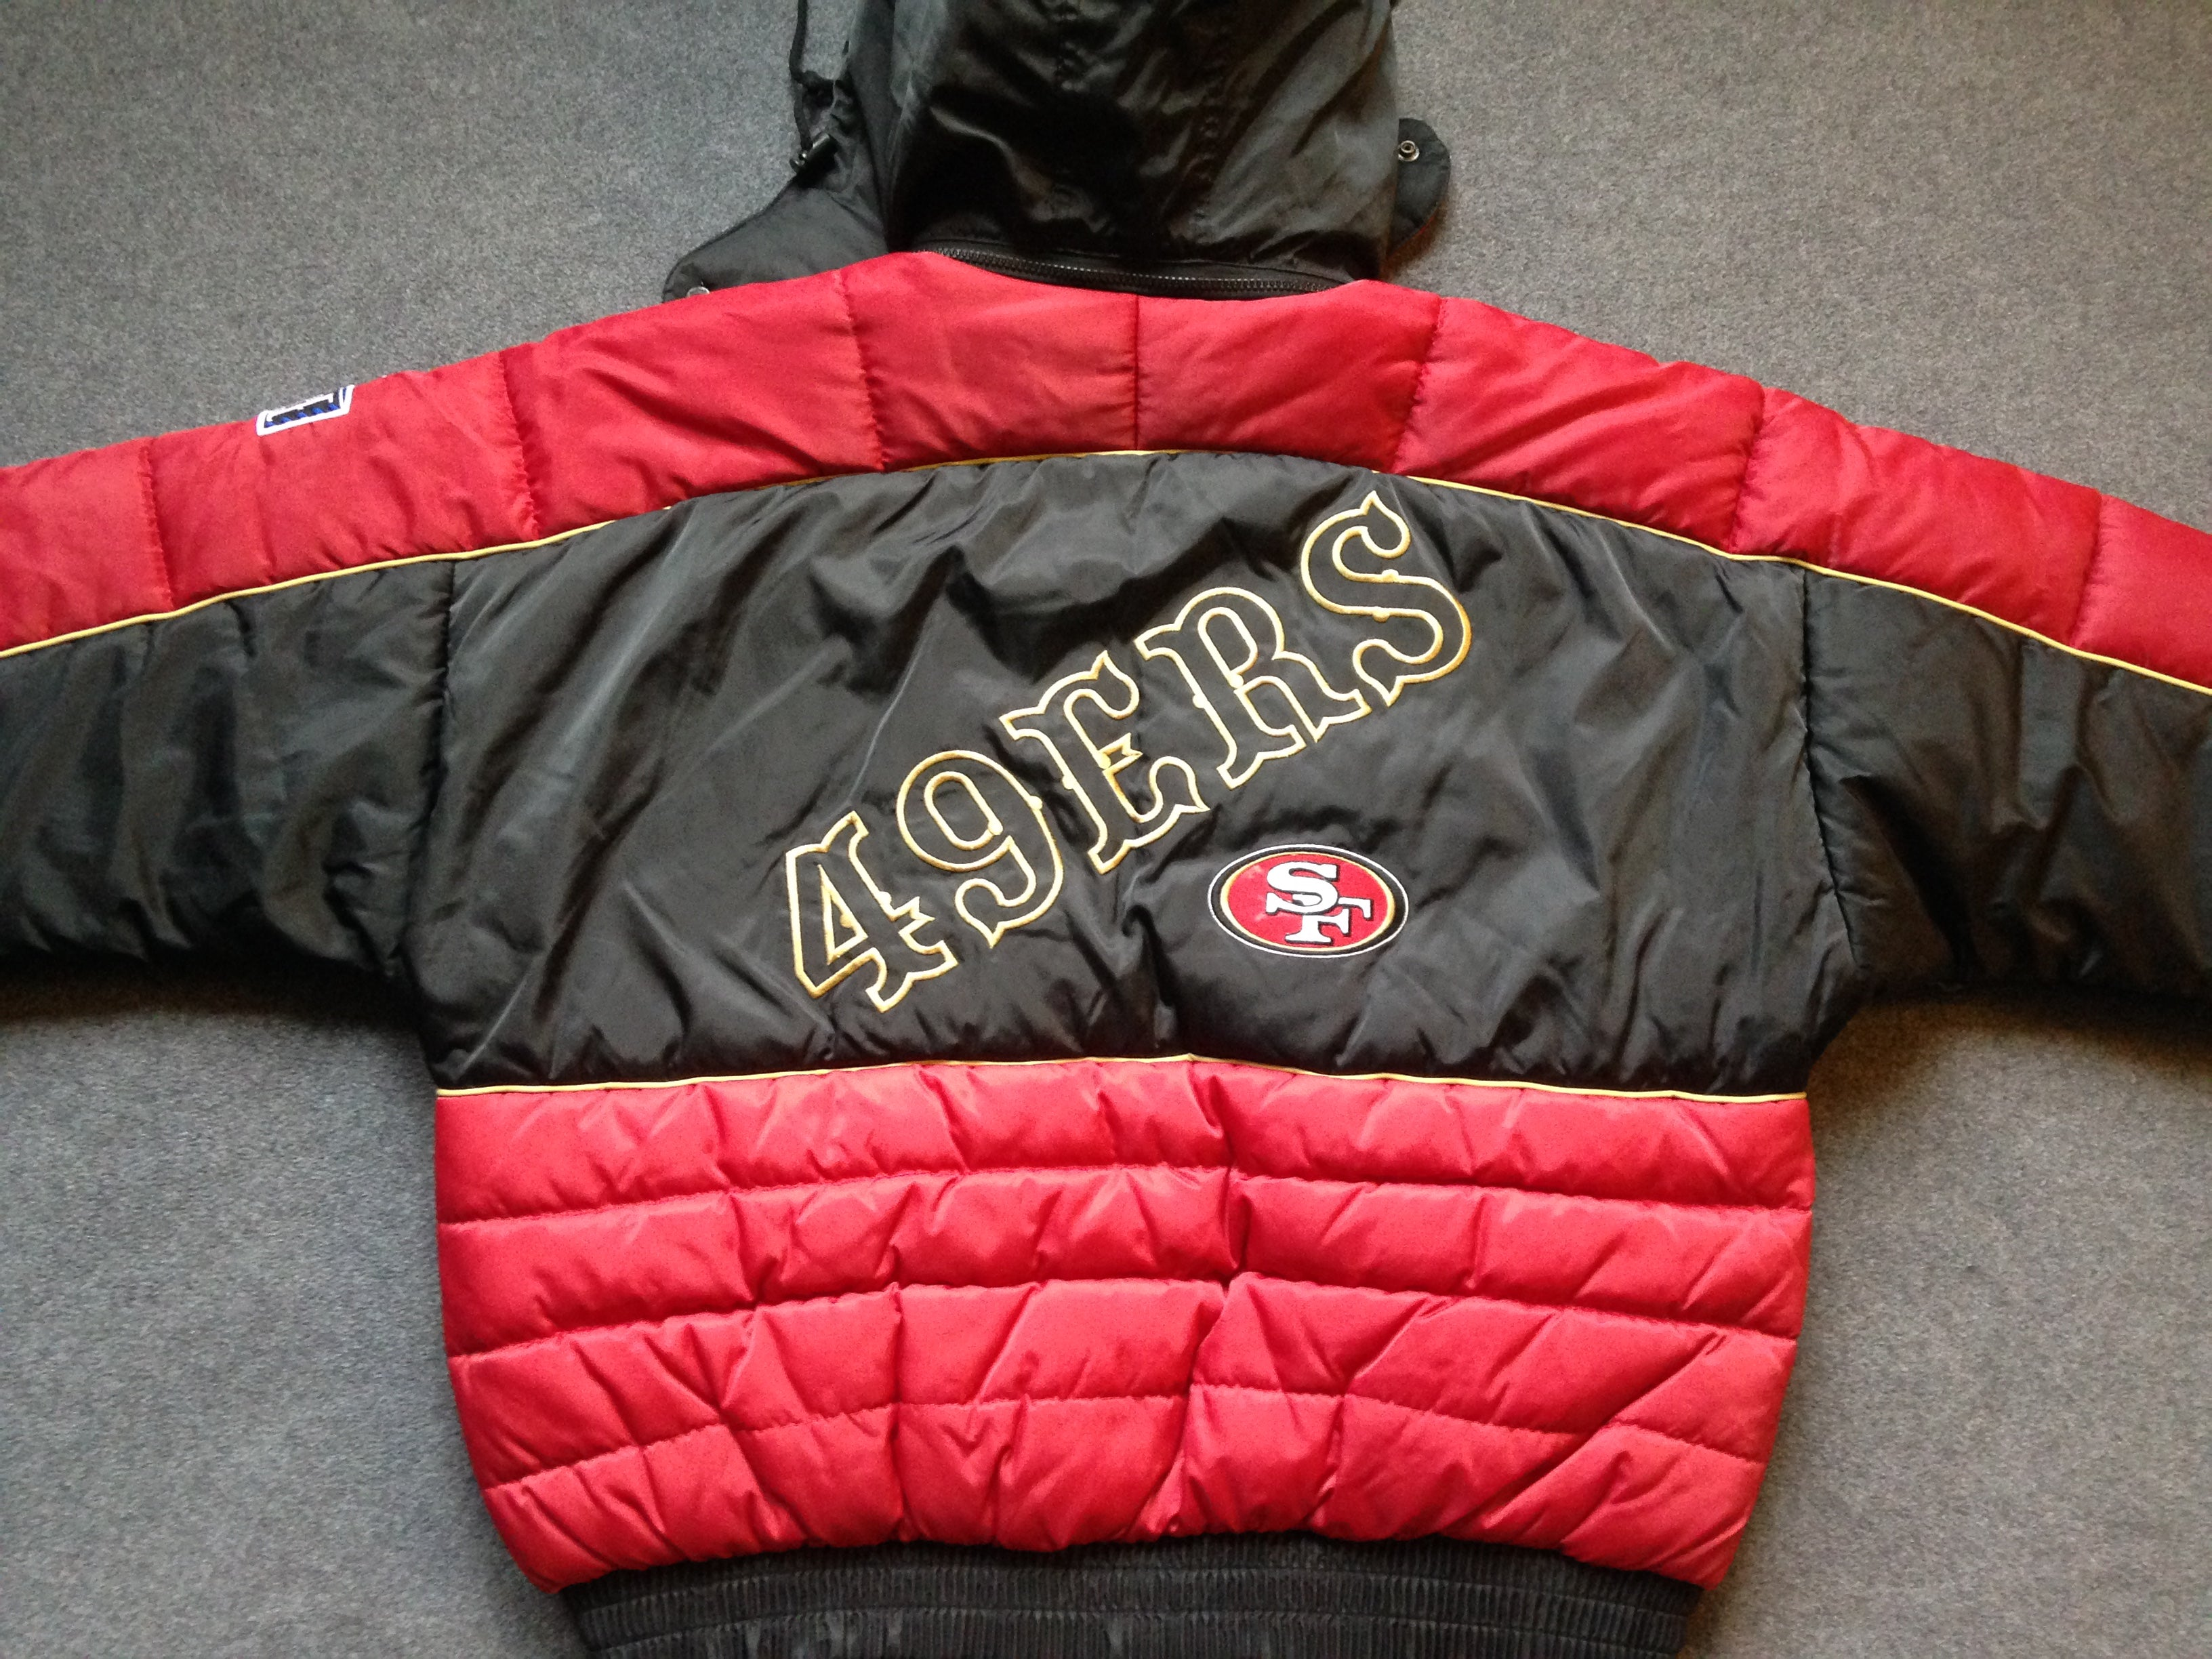 innovative design a9a69 00830 90s San Francisco 49ers coat by Pro Player - XL